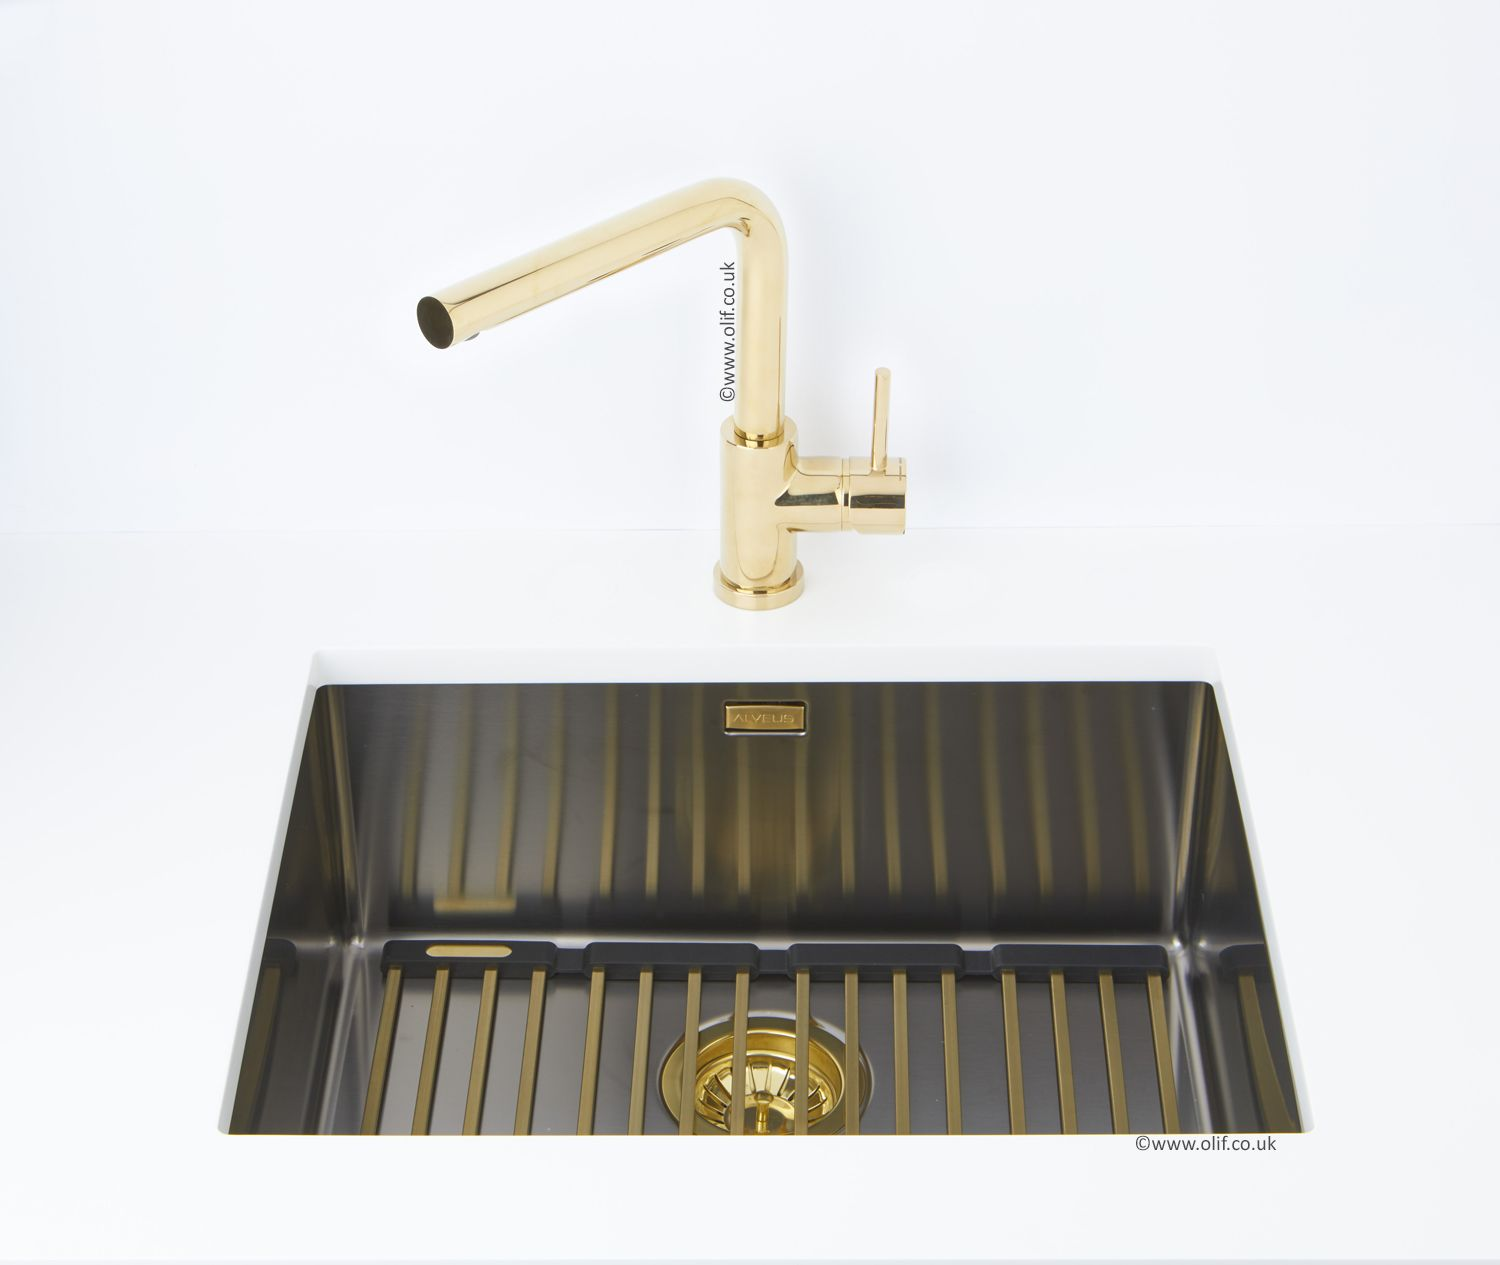 New Monarch Fold Mats Available Now With Our Monarch Mix Match Range Of Special Finish Sinks Not Only Protect Your Sink Kitchen Sink Taps Sink Sink Protector